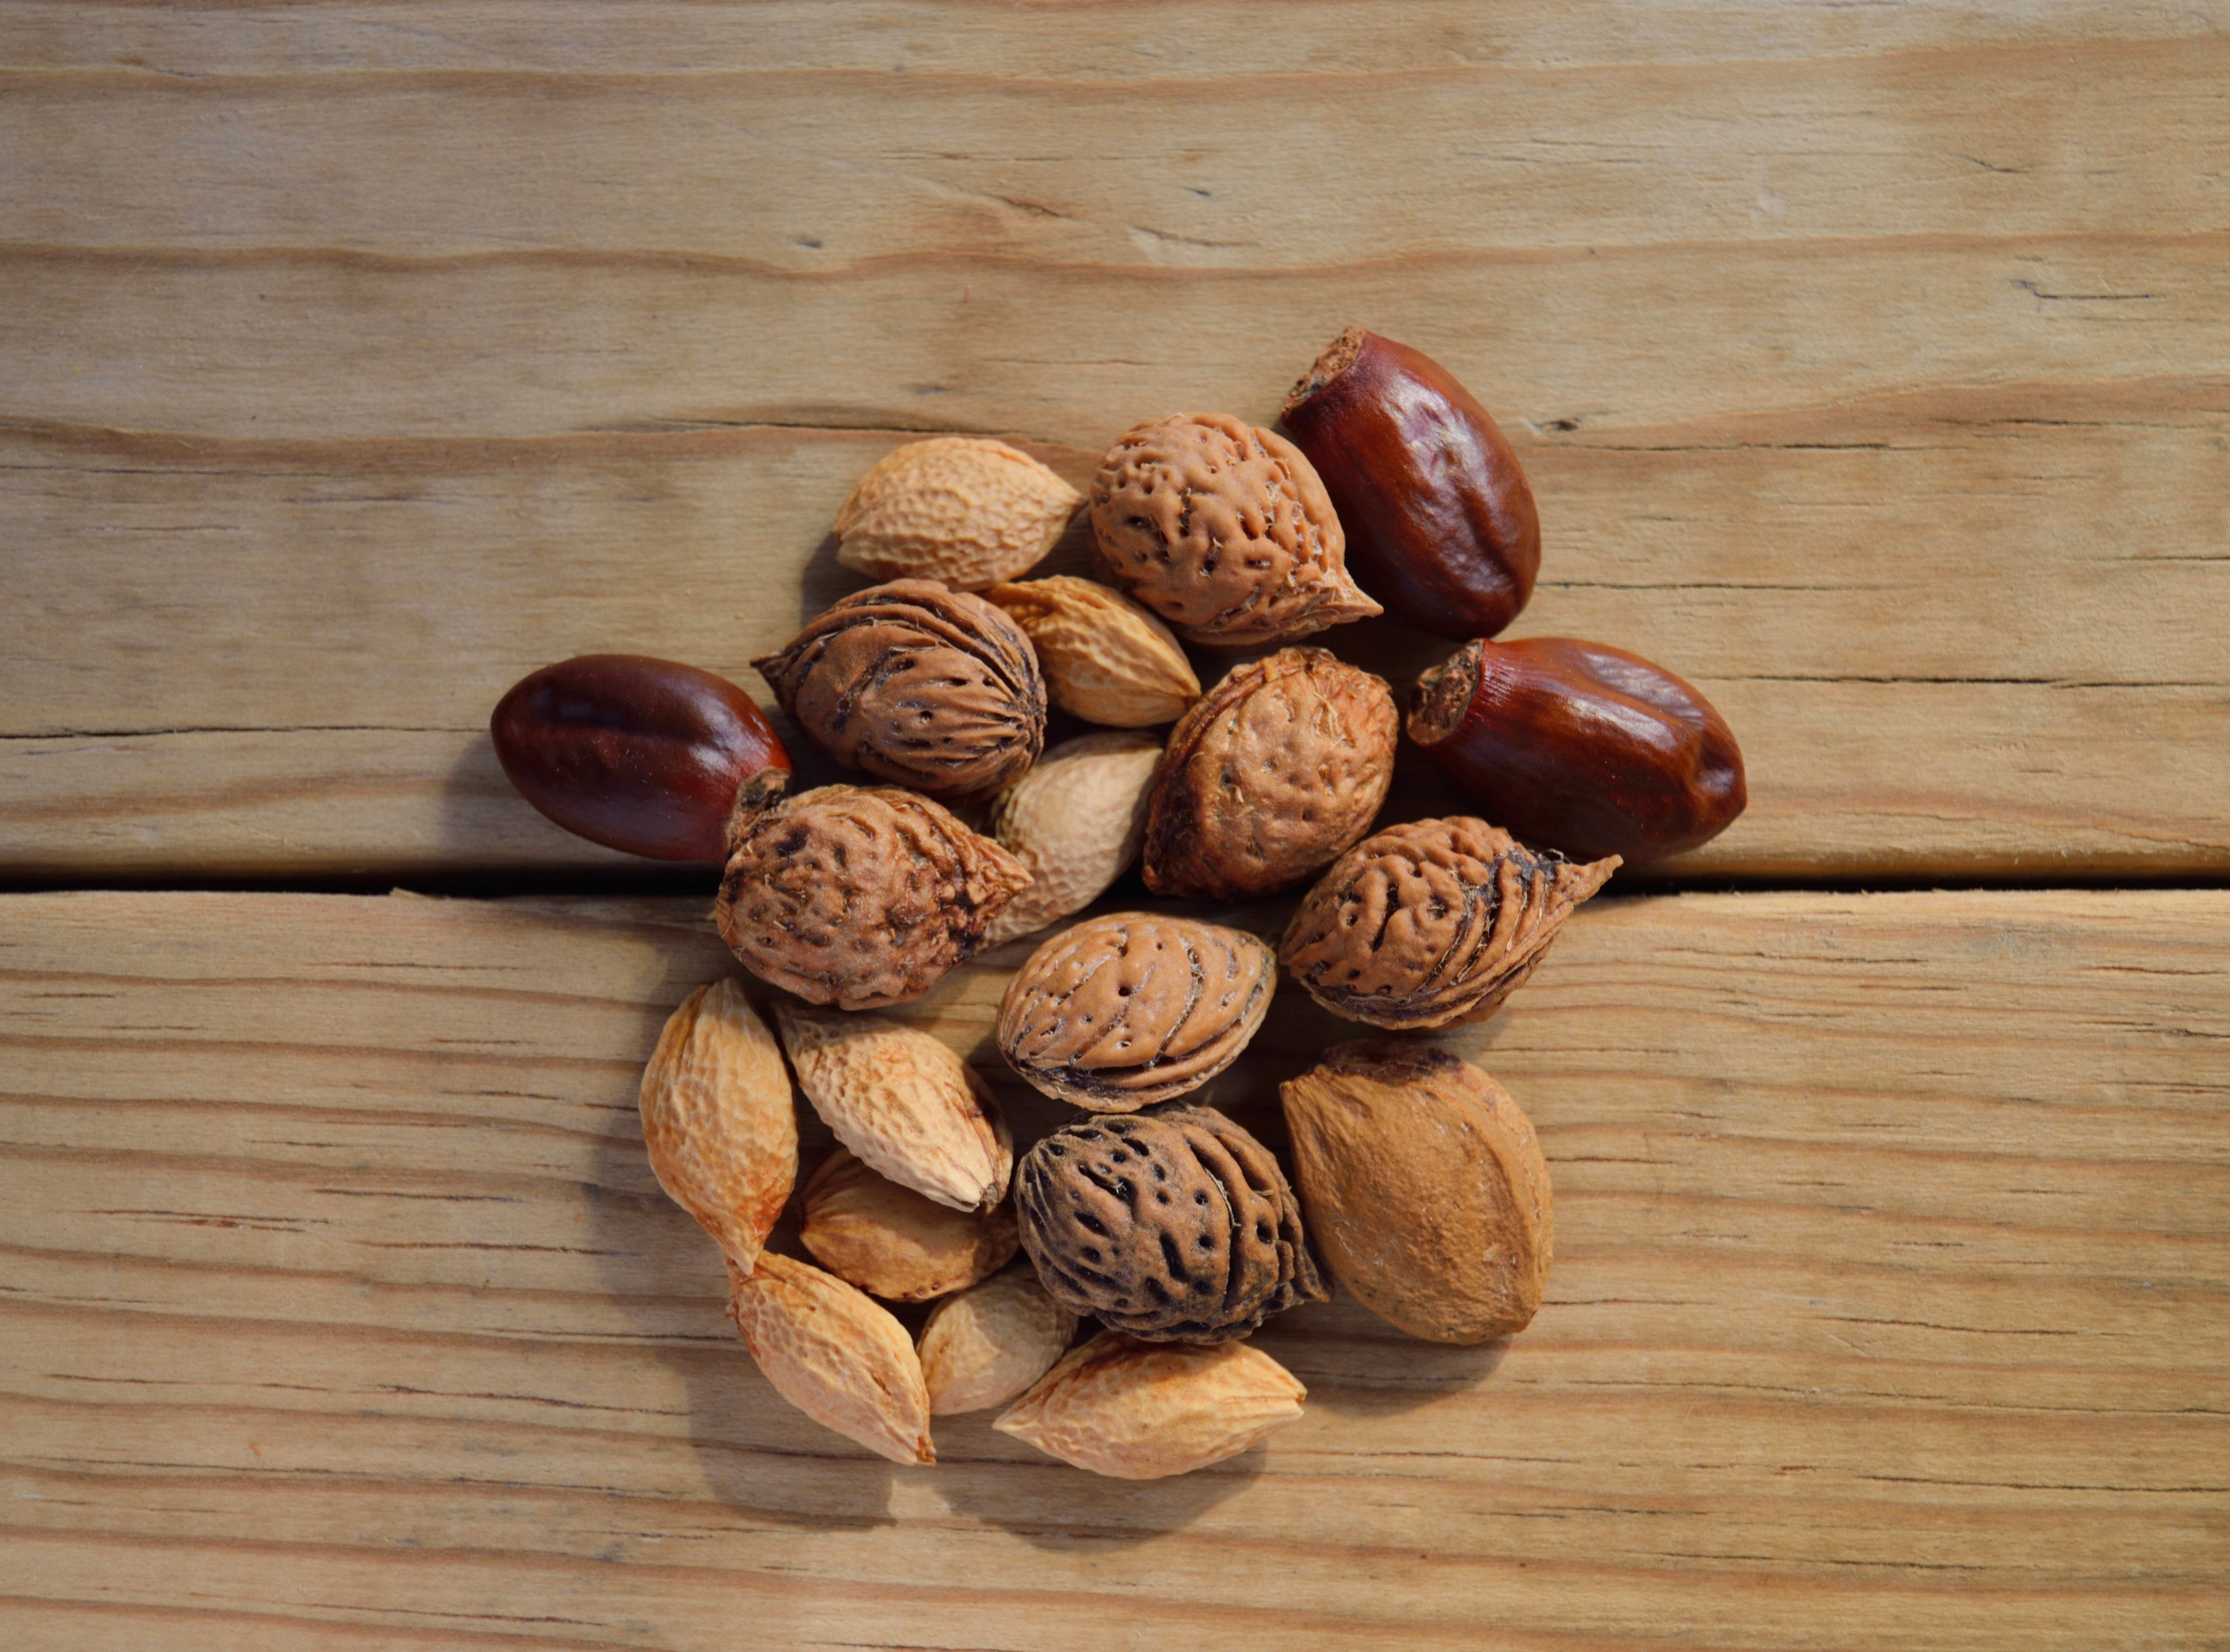 Looking for easy protein? Think nuts.